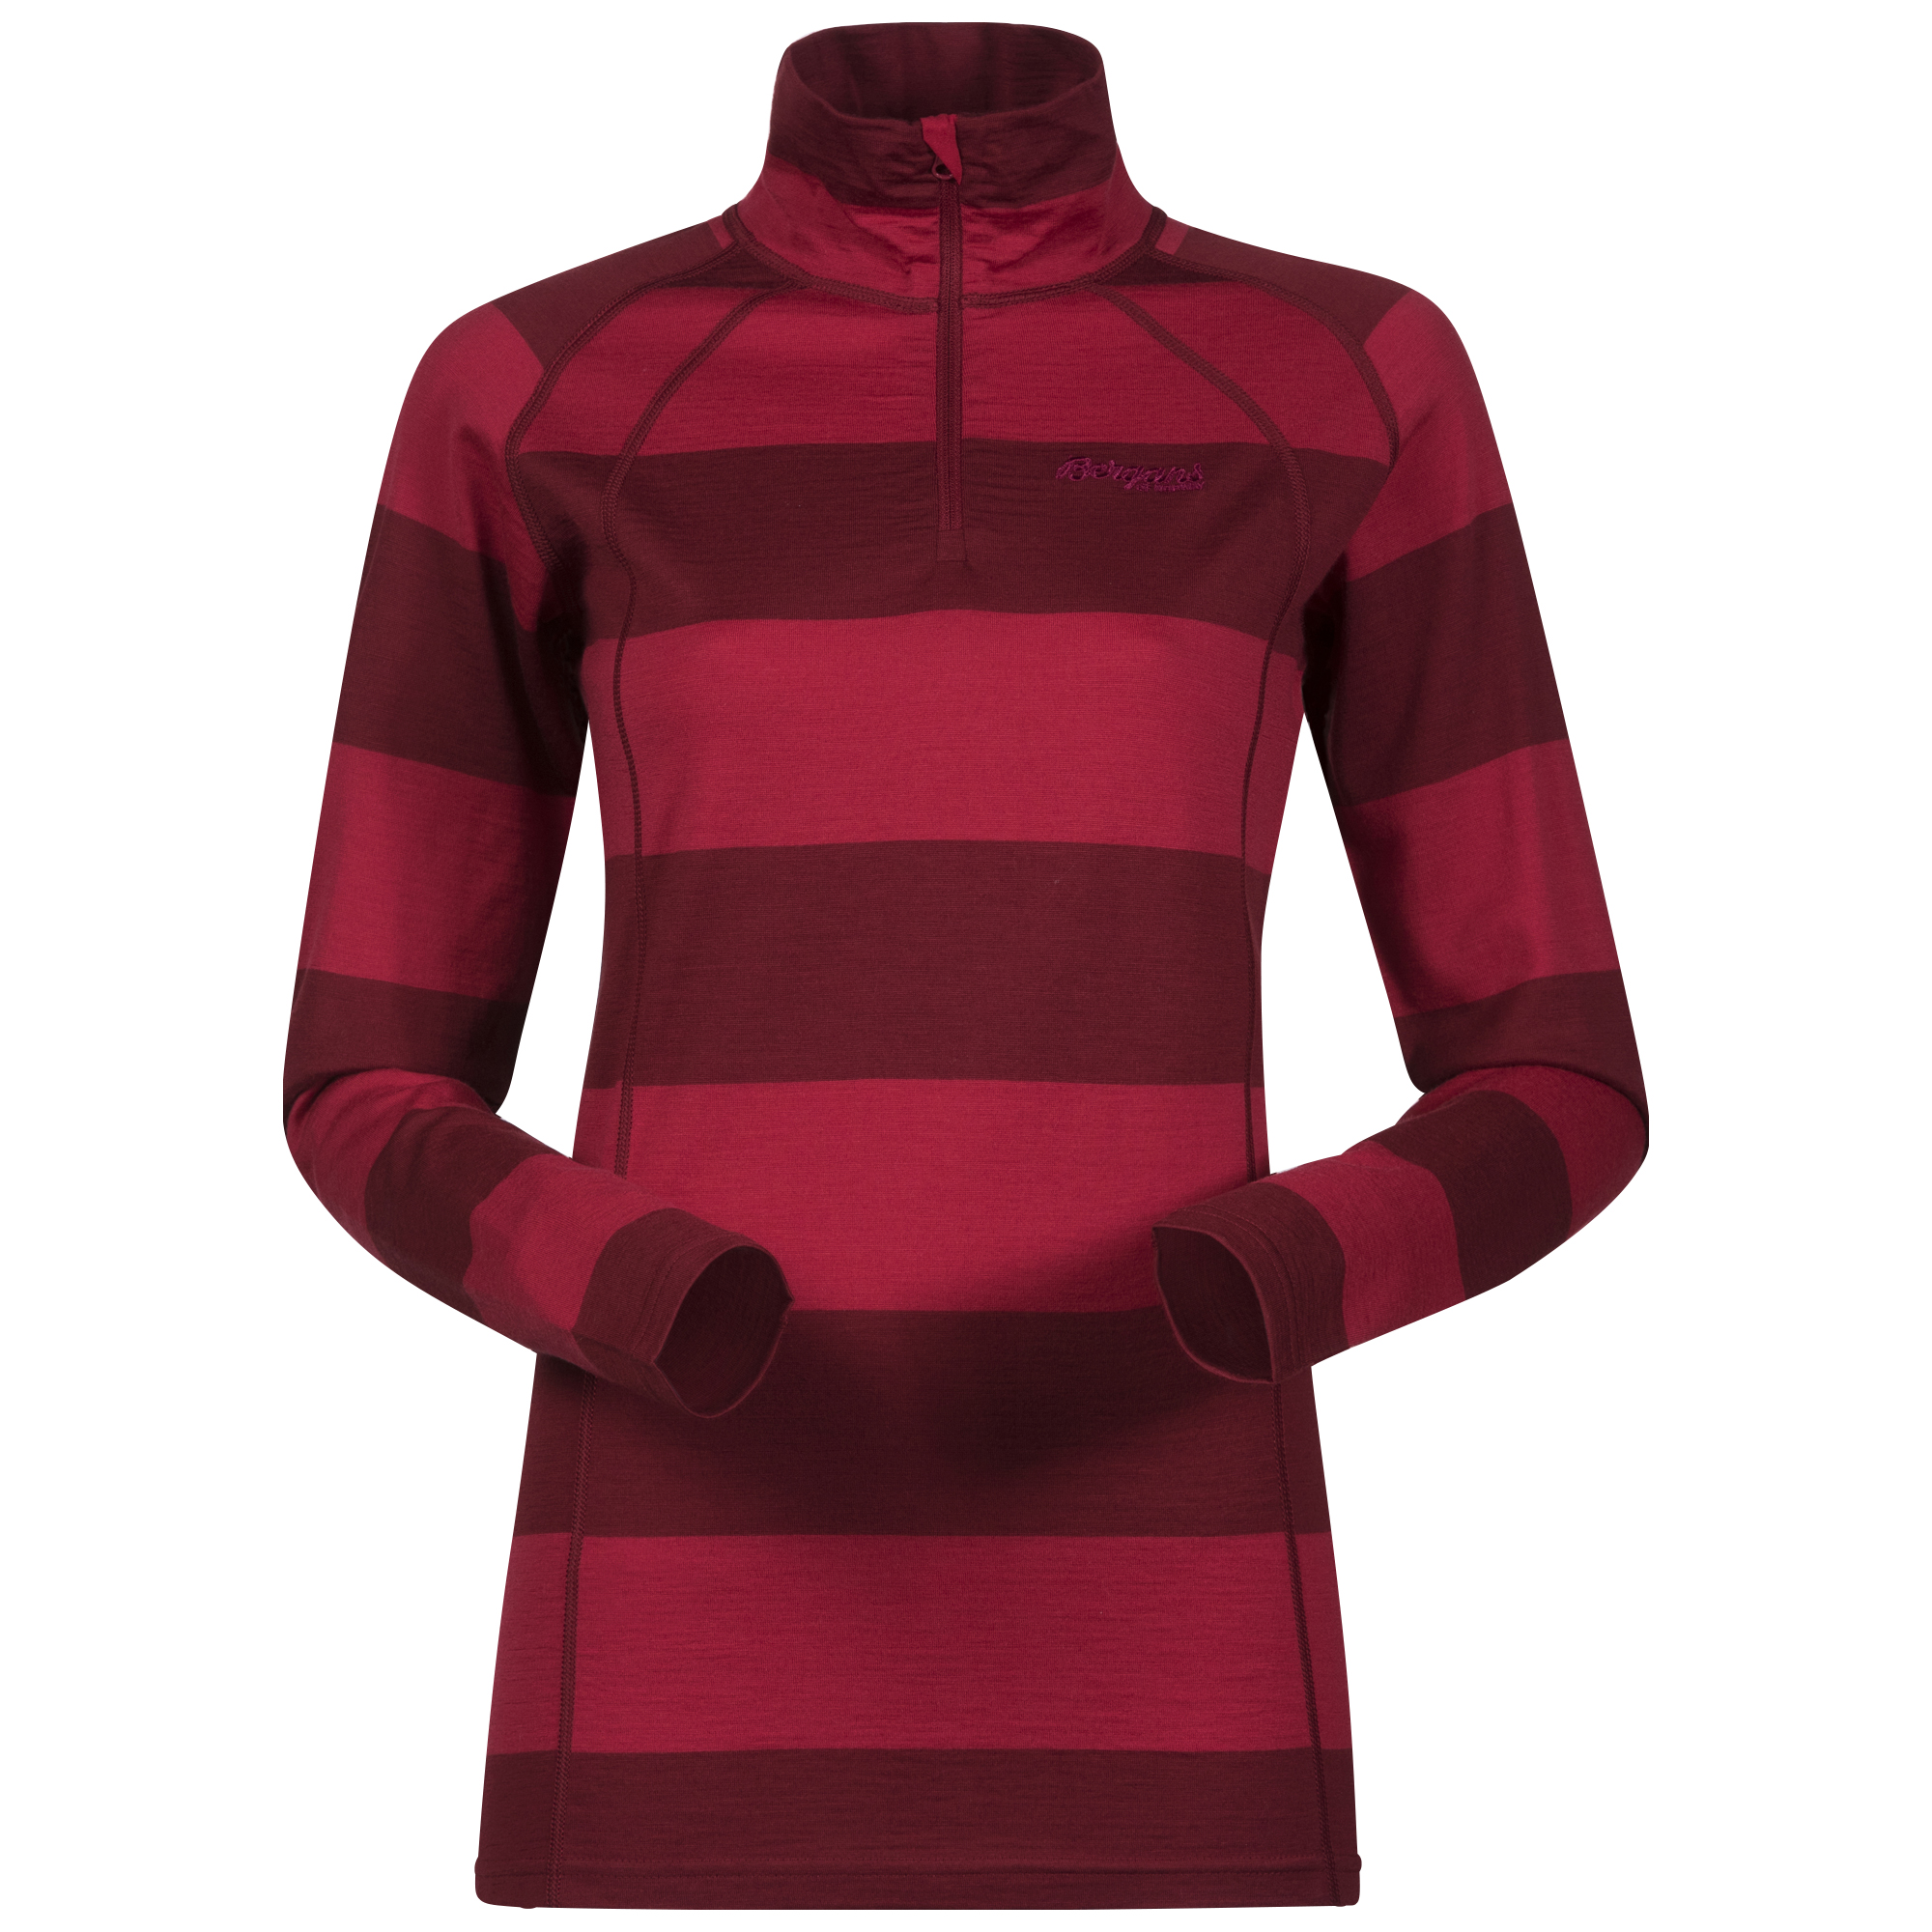 182512 Fjellrapp Lady Half Zip Red/Burgundy Striped